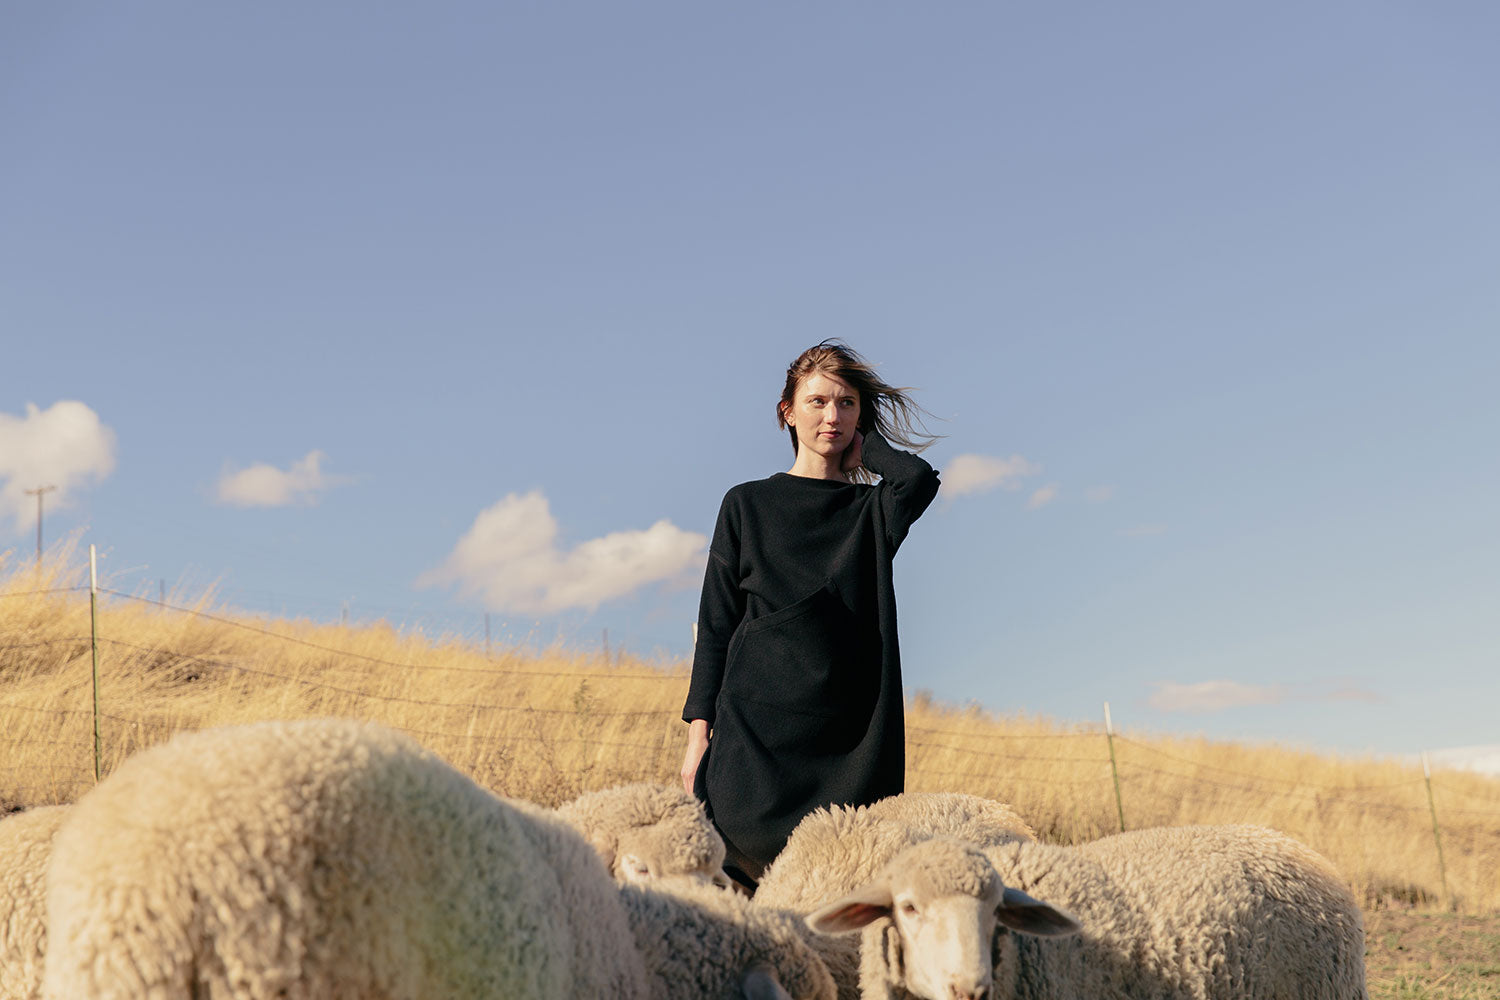 HOVER2_[a href=|/collections/cold-weather-collection/products/harper-sweater-dress-midweight-felted-wool|]Harper Sweater Dress [Black Midweight Felted Wool][/a]